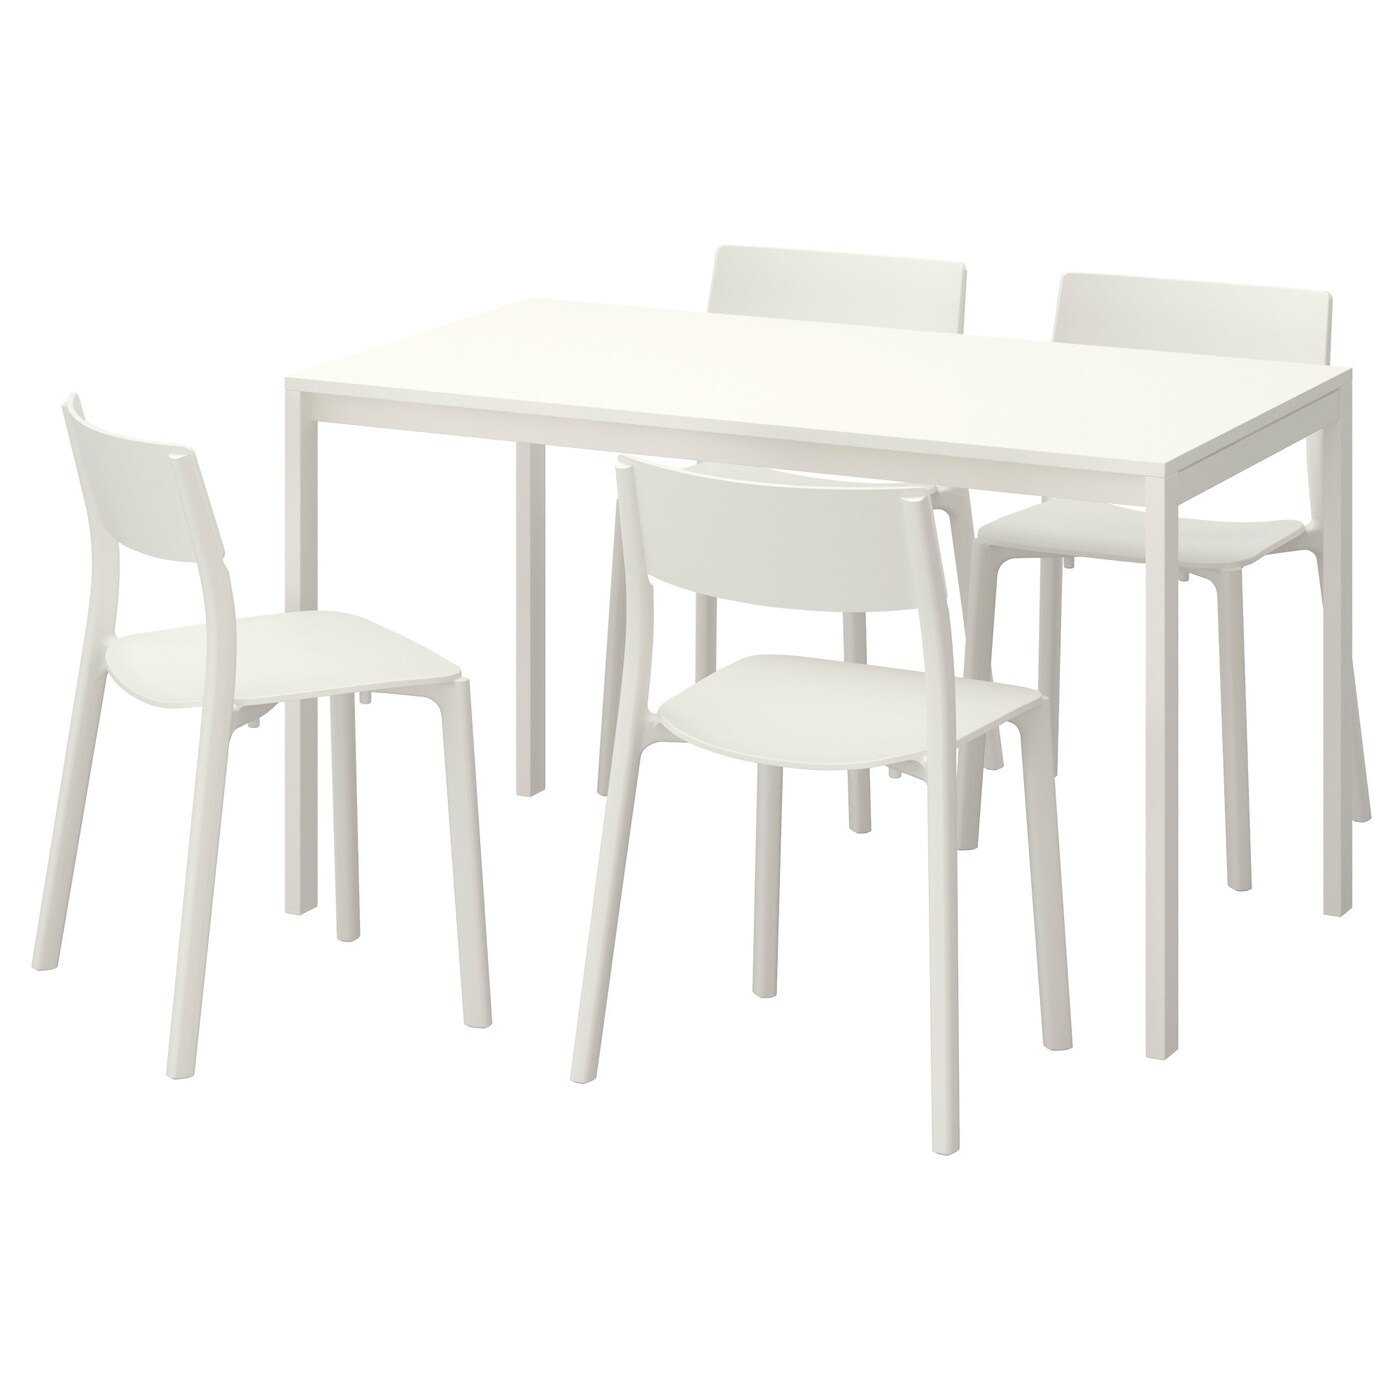 MELLTORP/JANINGE Table And 4 Chairs White/white 125 Cm